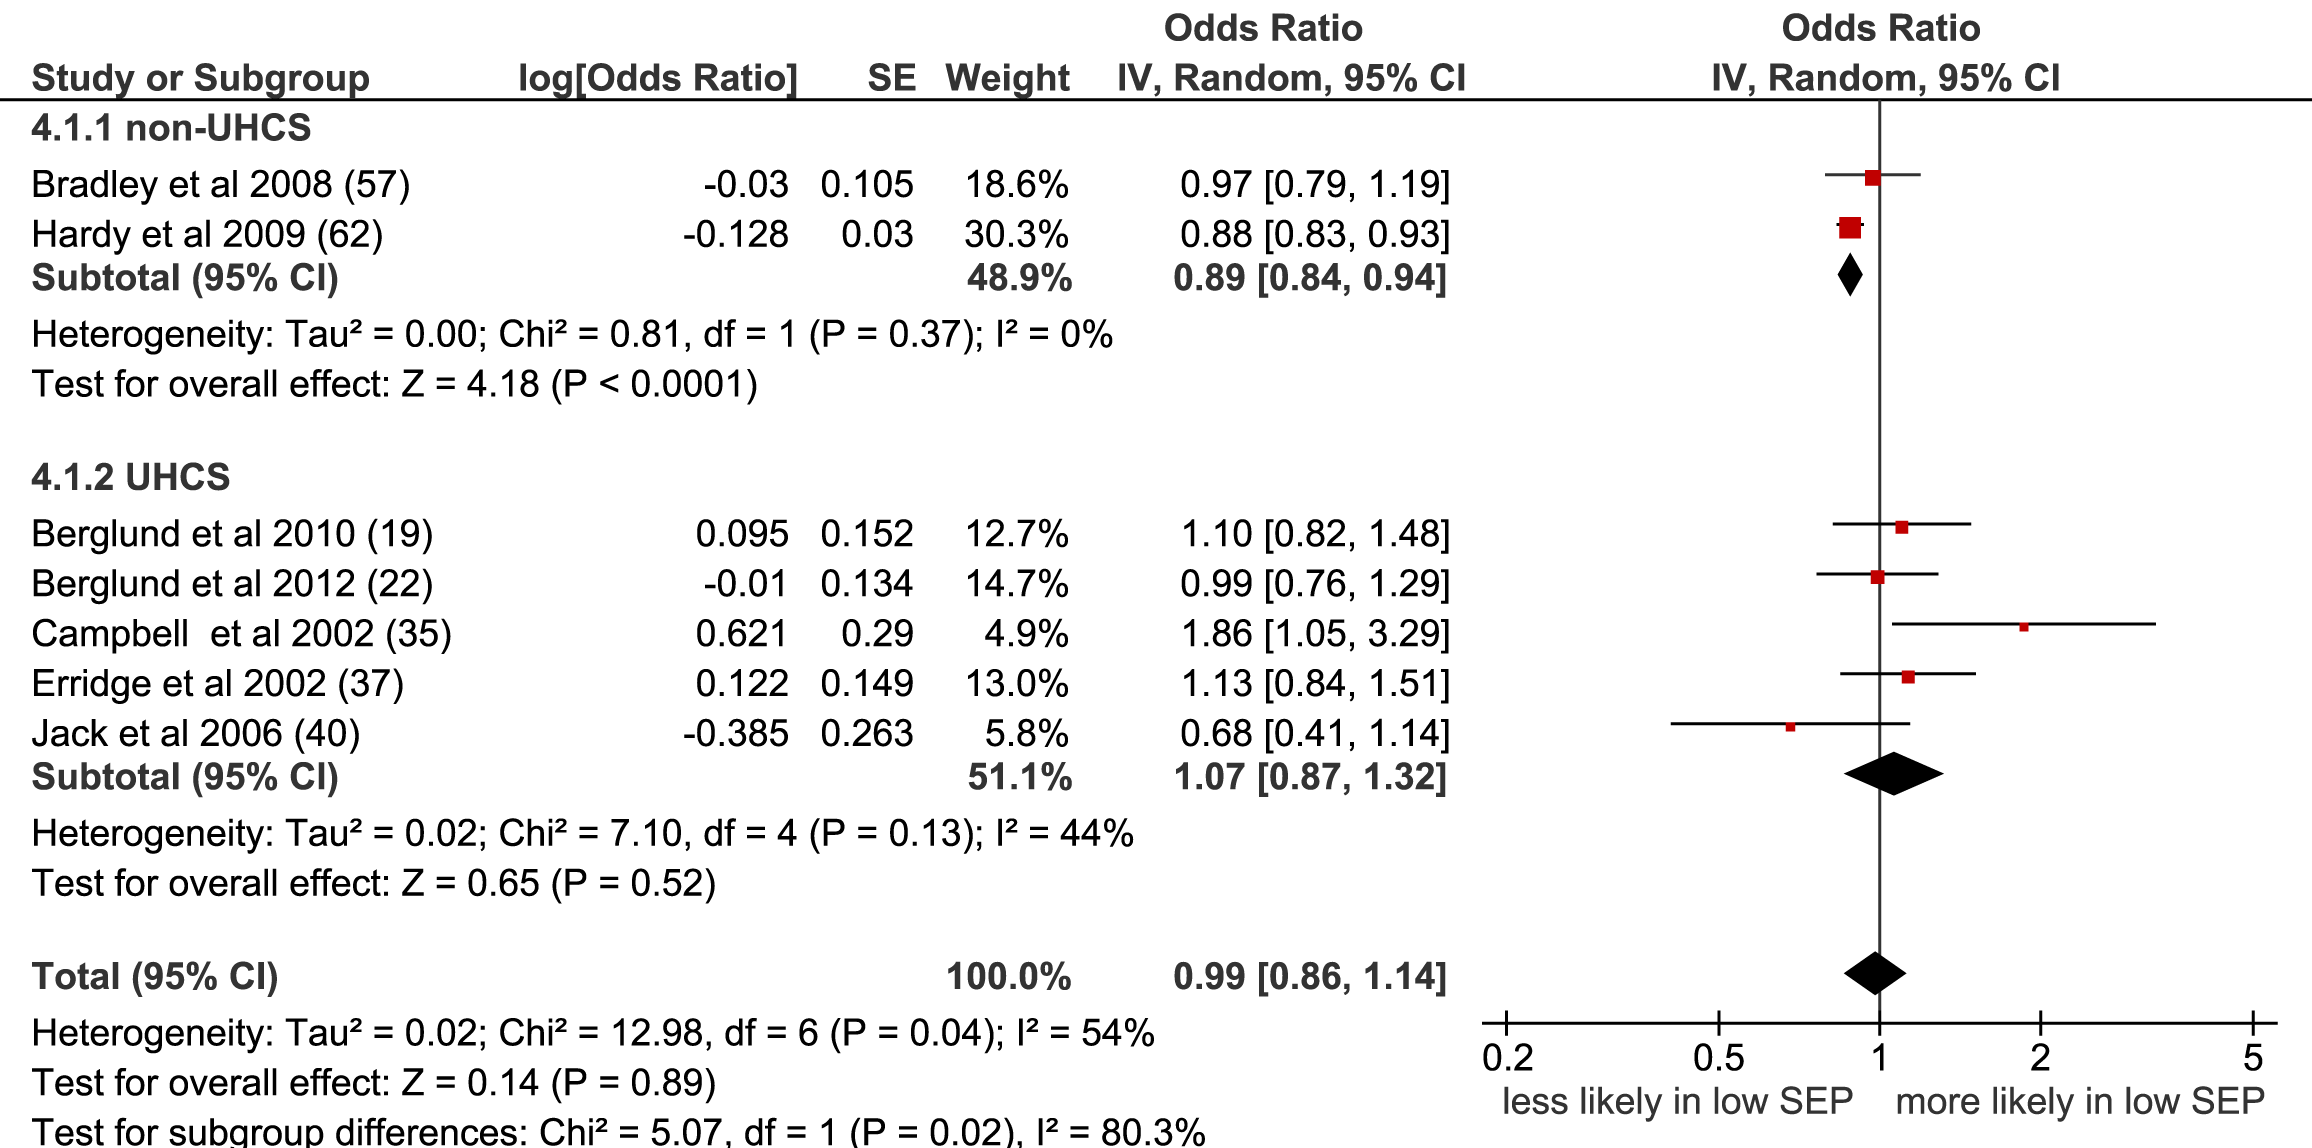 Meta-analysis of odds of receipt of radiotherapy in low versus high SEP.